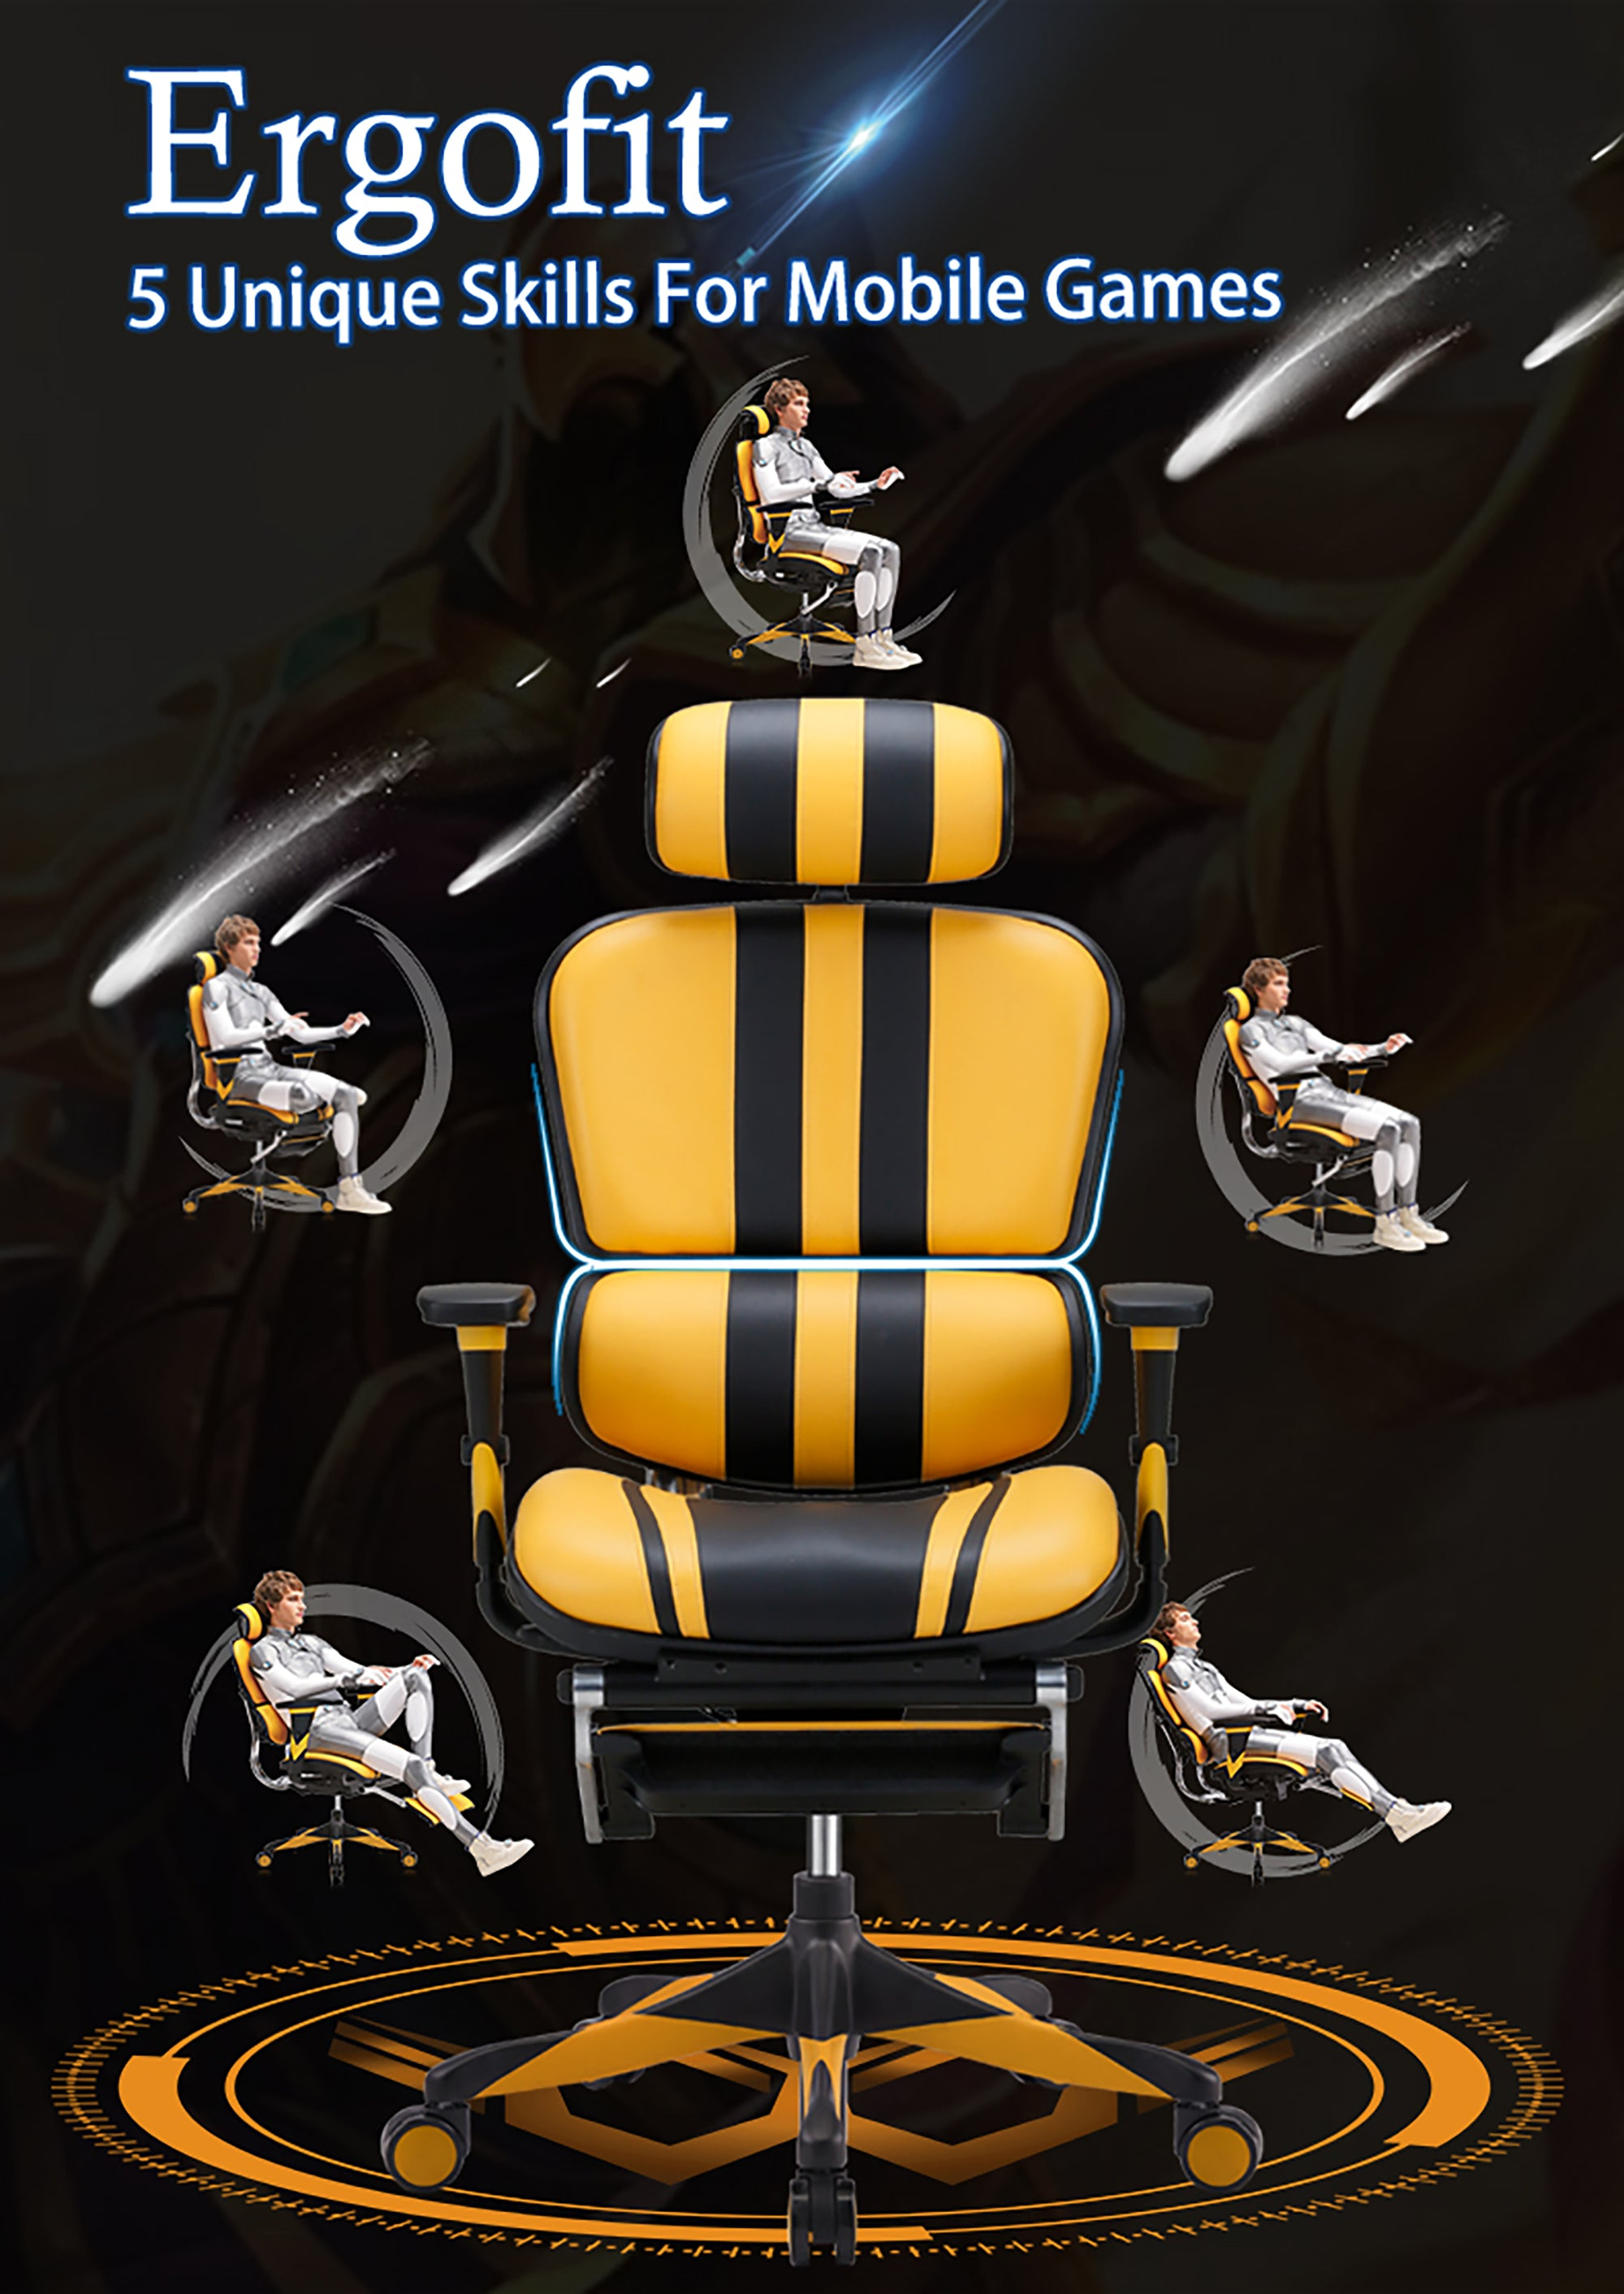 Ergofit Gaming Chair Product Description